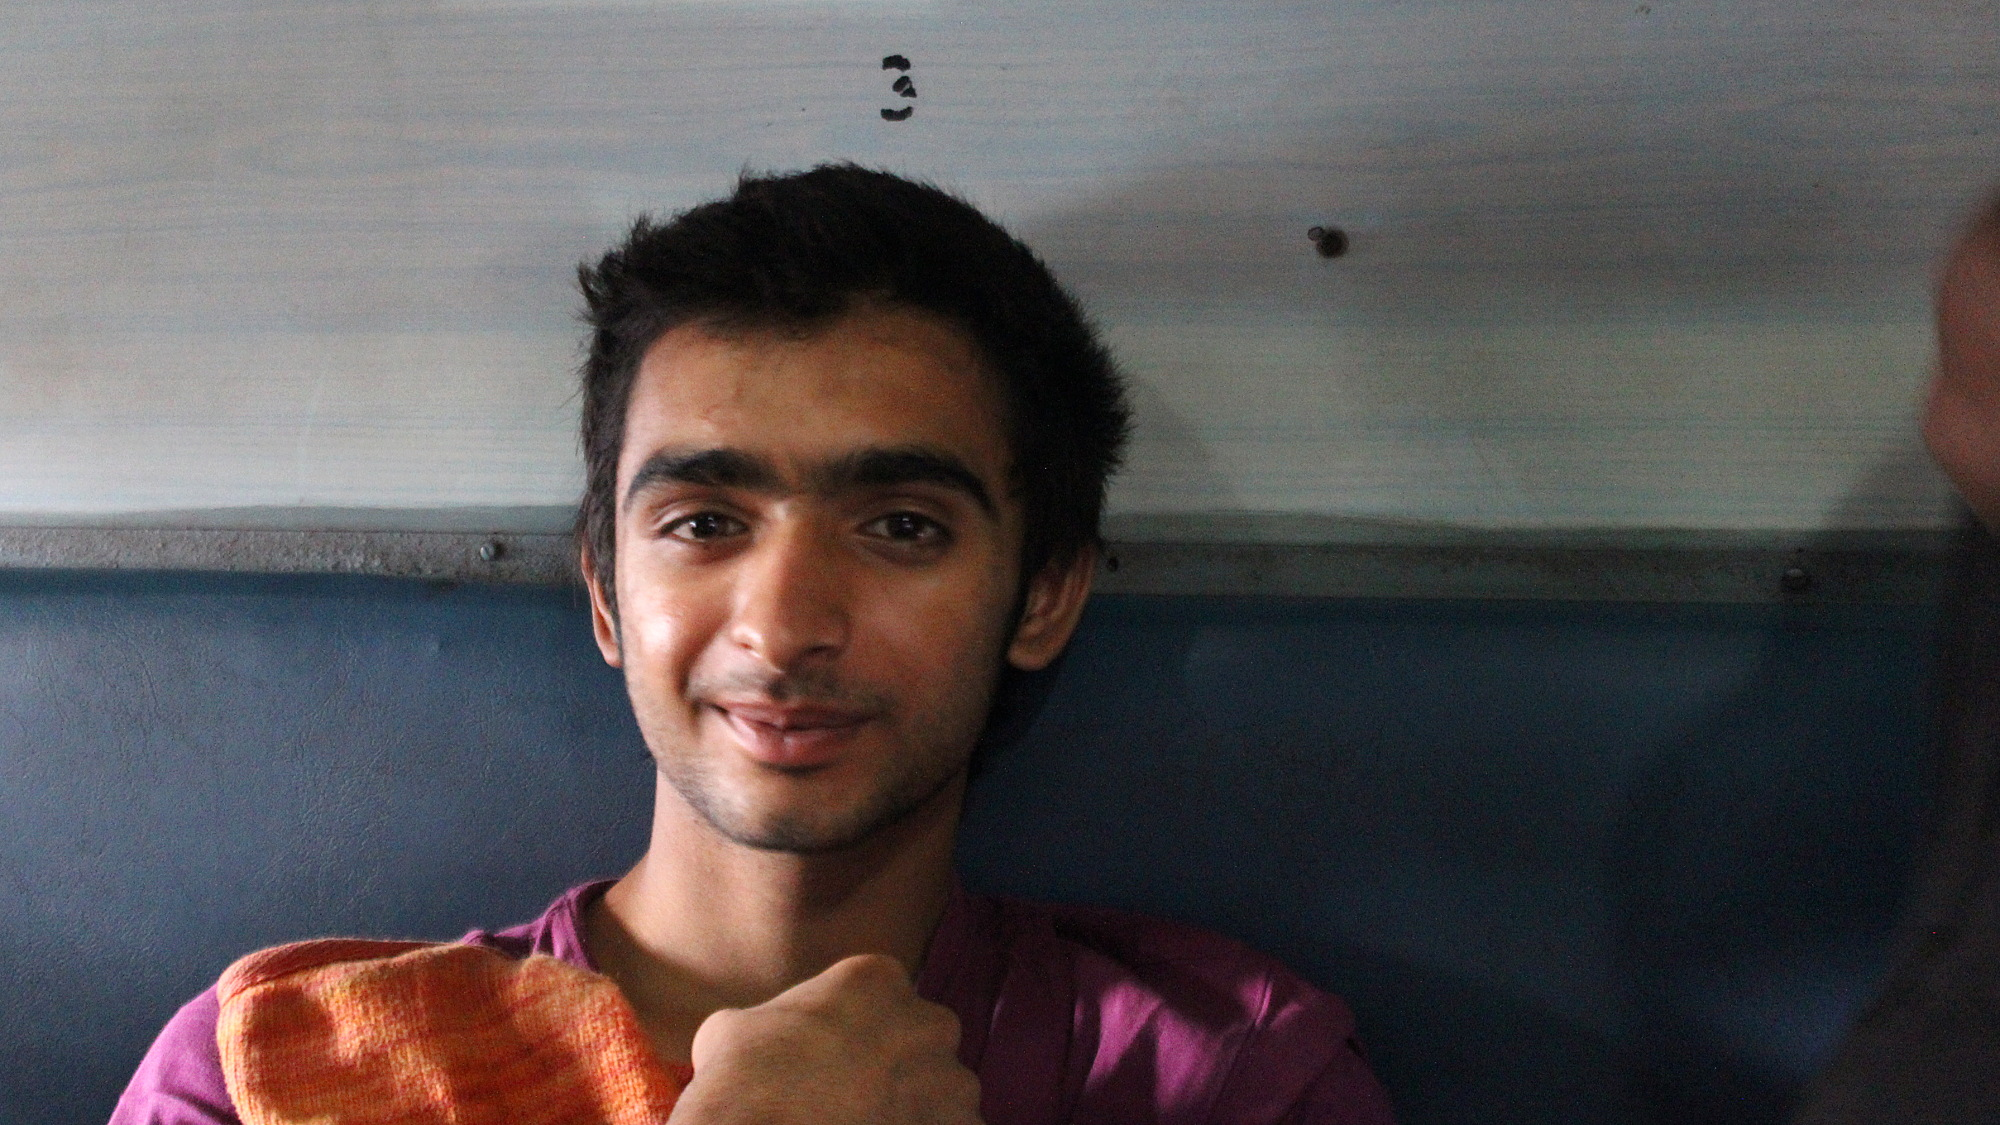 A young Indian man sitting on a second class train carriage.